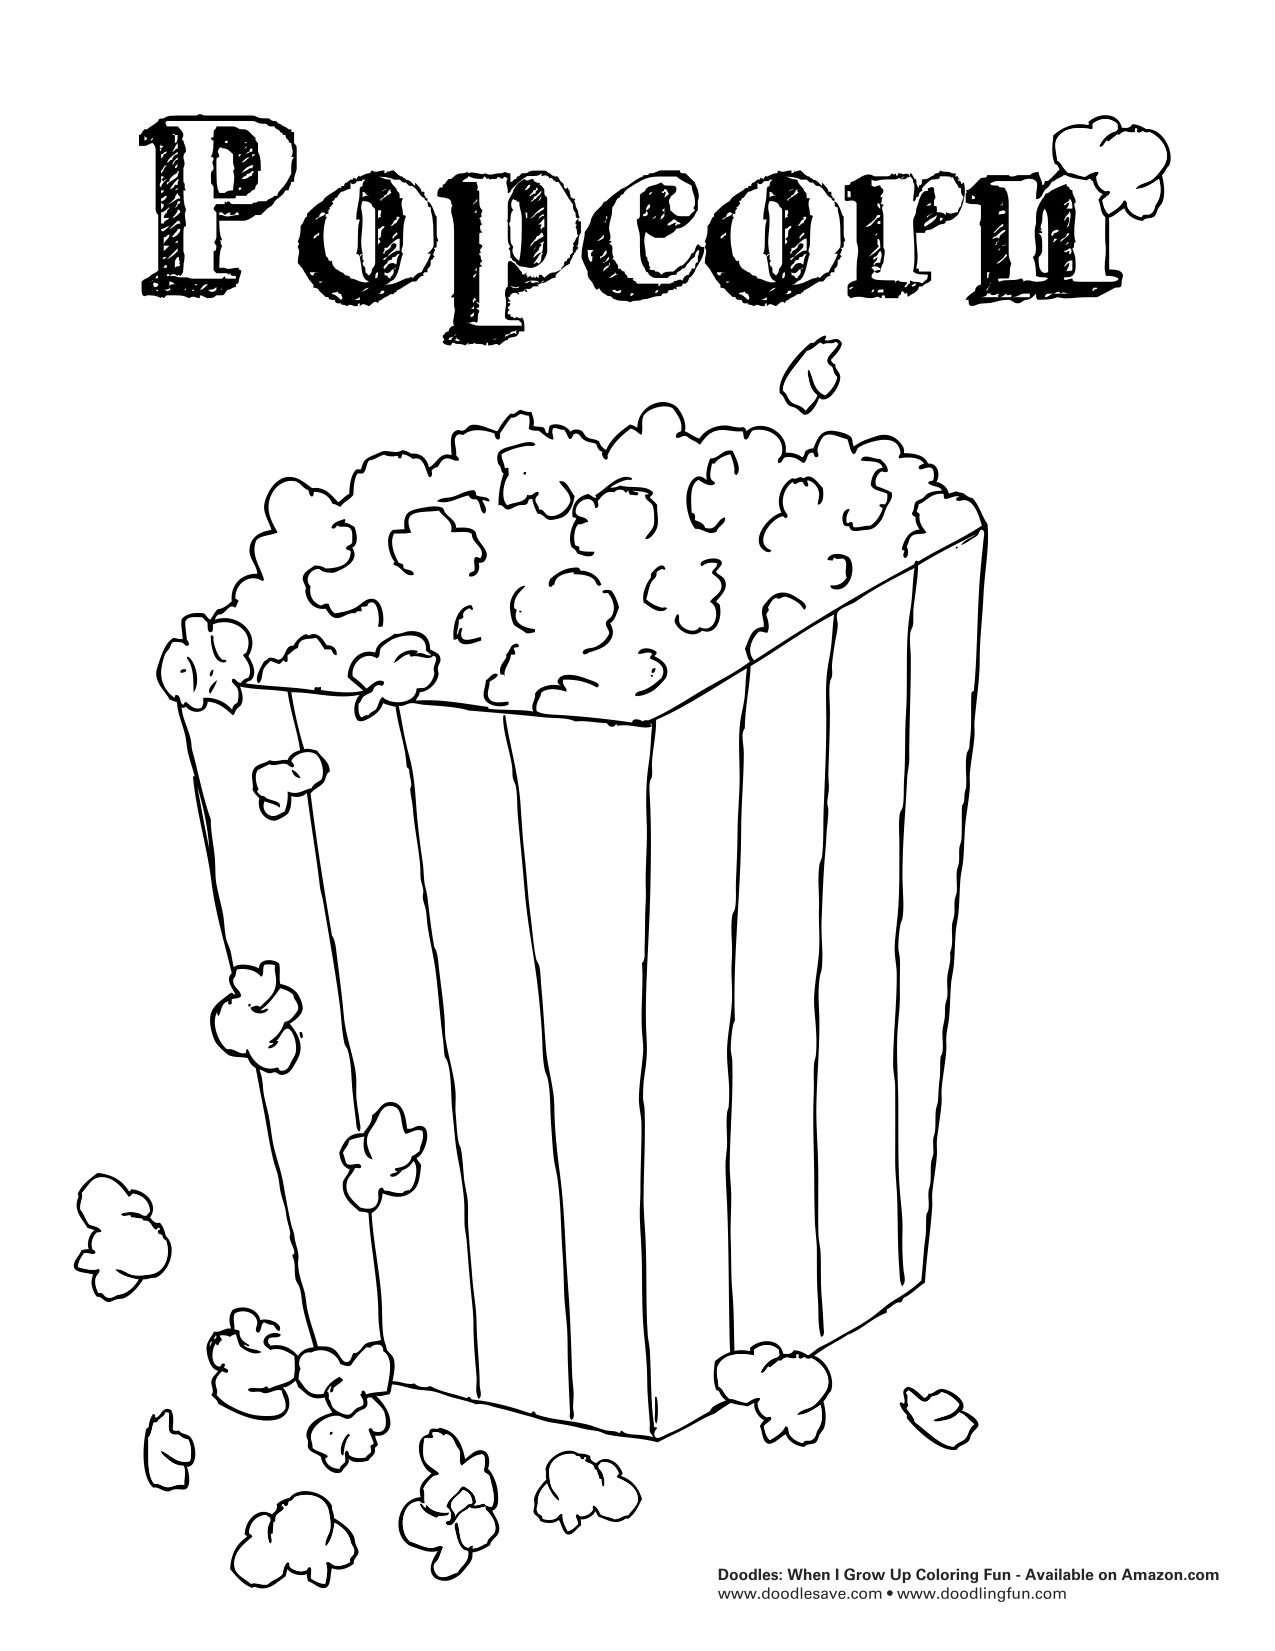 Popcorn box coloring page sketch coloring page for Popcorn kernel coloring page